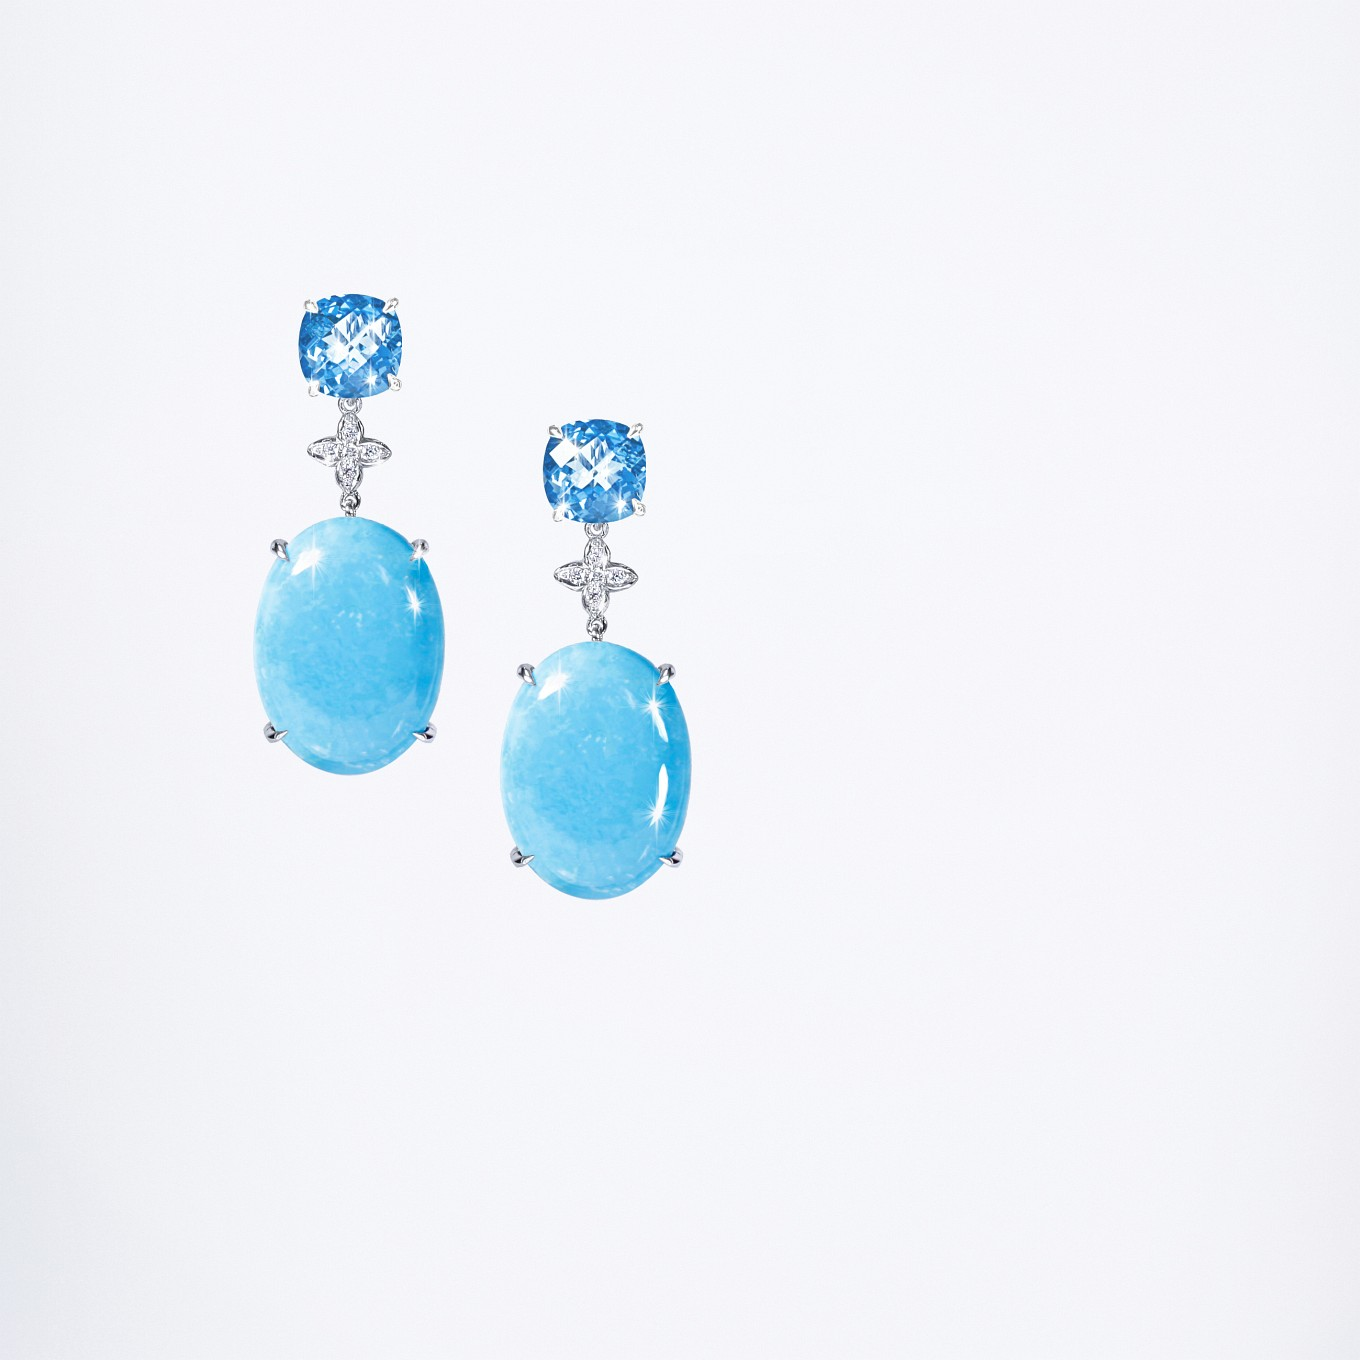 BLUE TOPAZ , TURQUOISE CABOCHON & DIAMOND EARRINGS IN WHITE